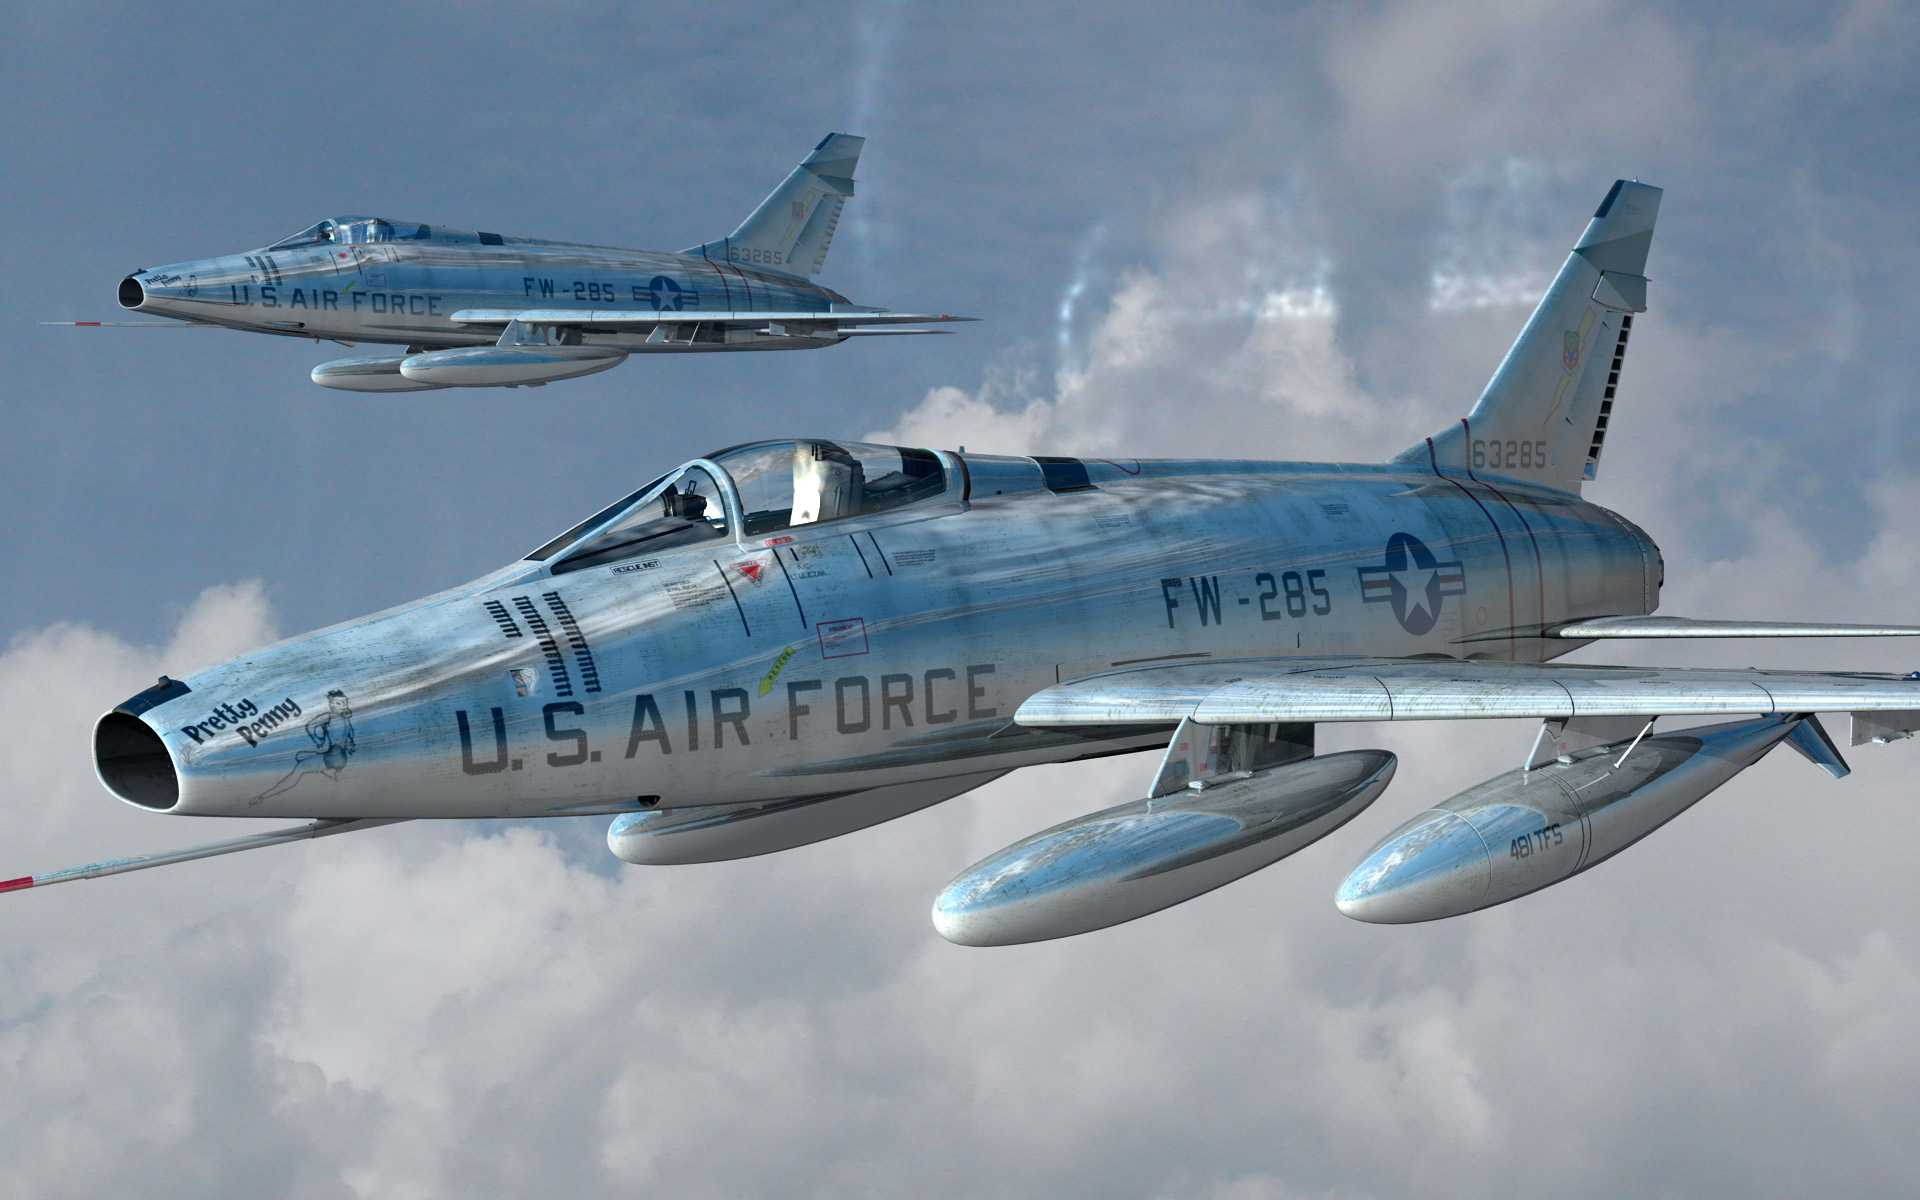 F100 Super Sabre Jet Highly Reflective By Pixelcandy Vue Military